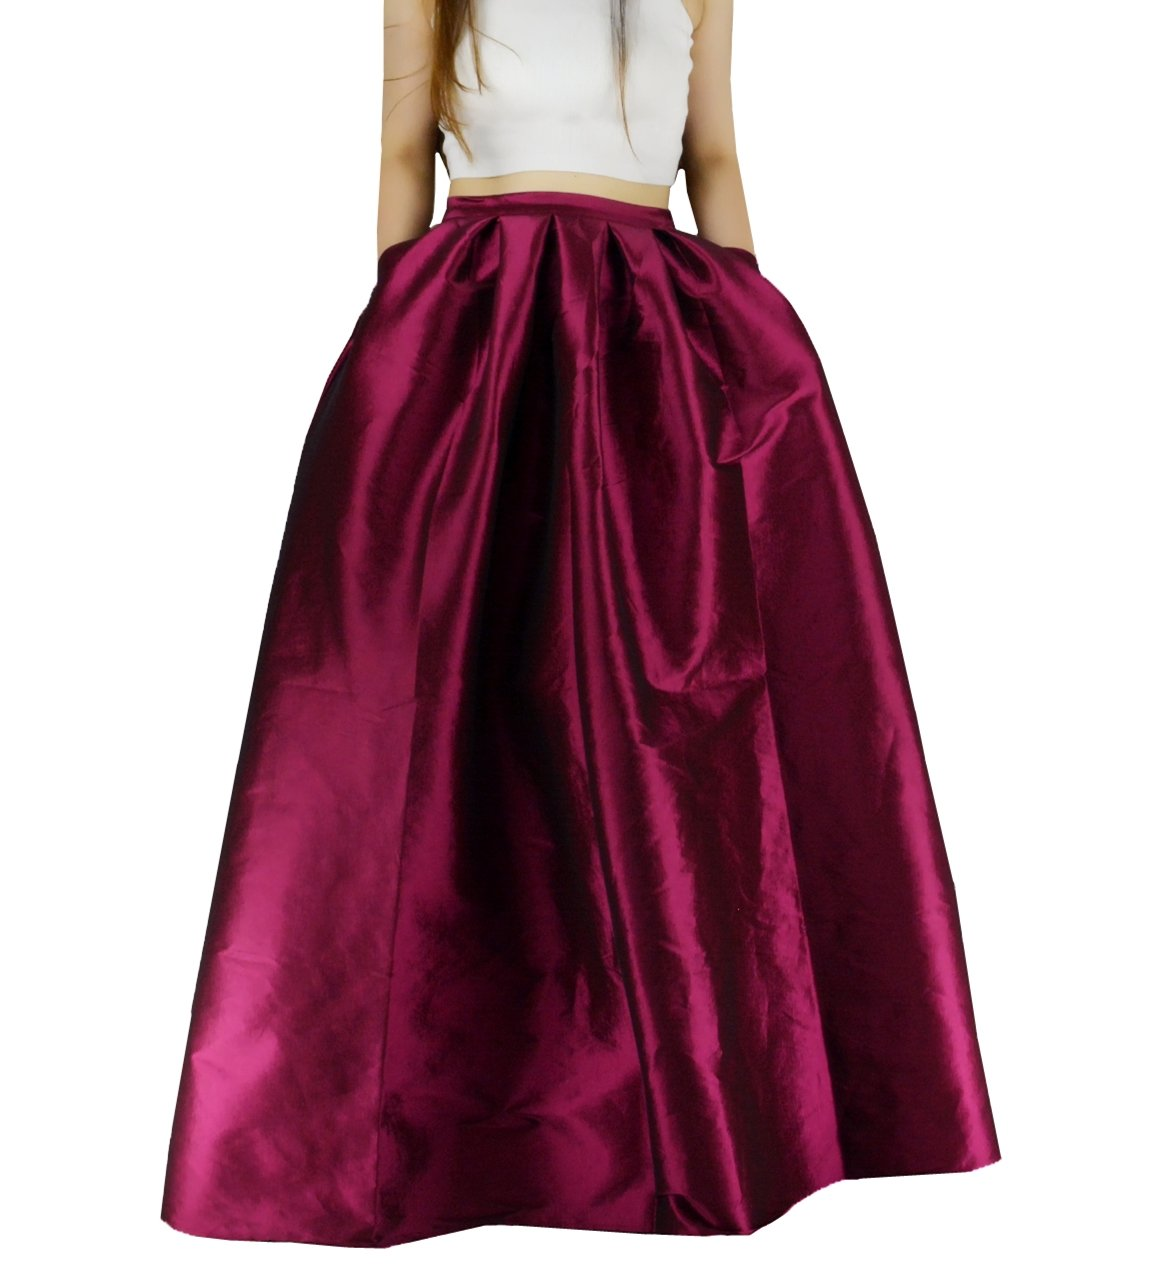 YSJ Women's High Waist A-Line Pleated Maxi Skirts Party Swing Skirt With Pockets (10, Burgundy)